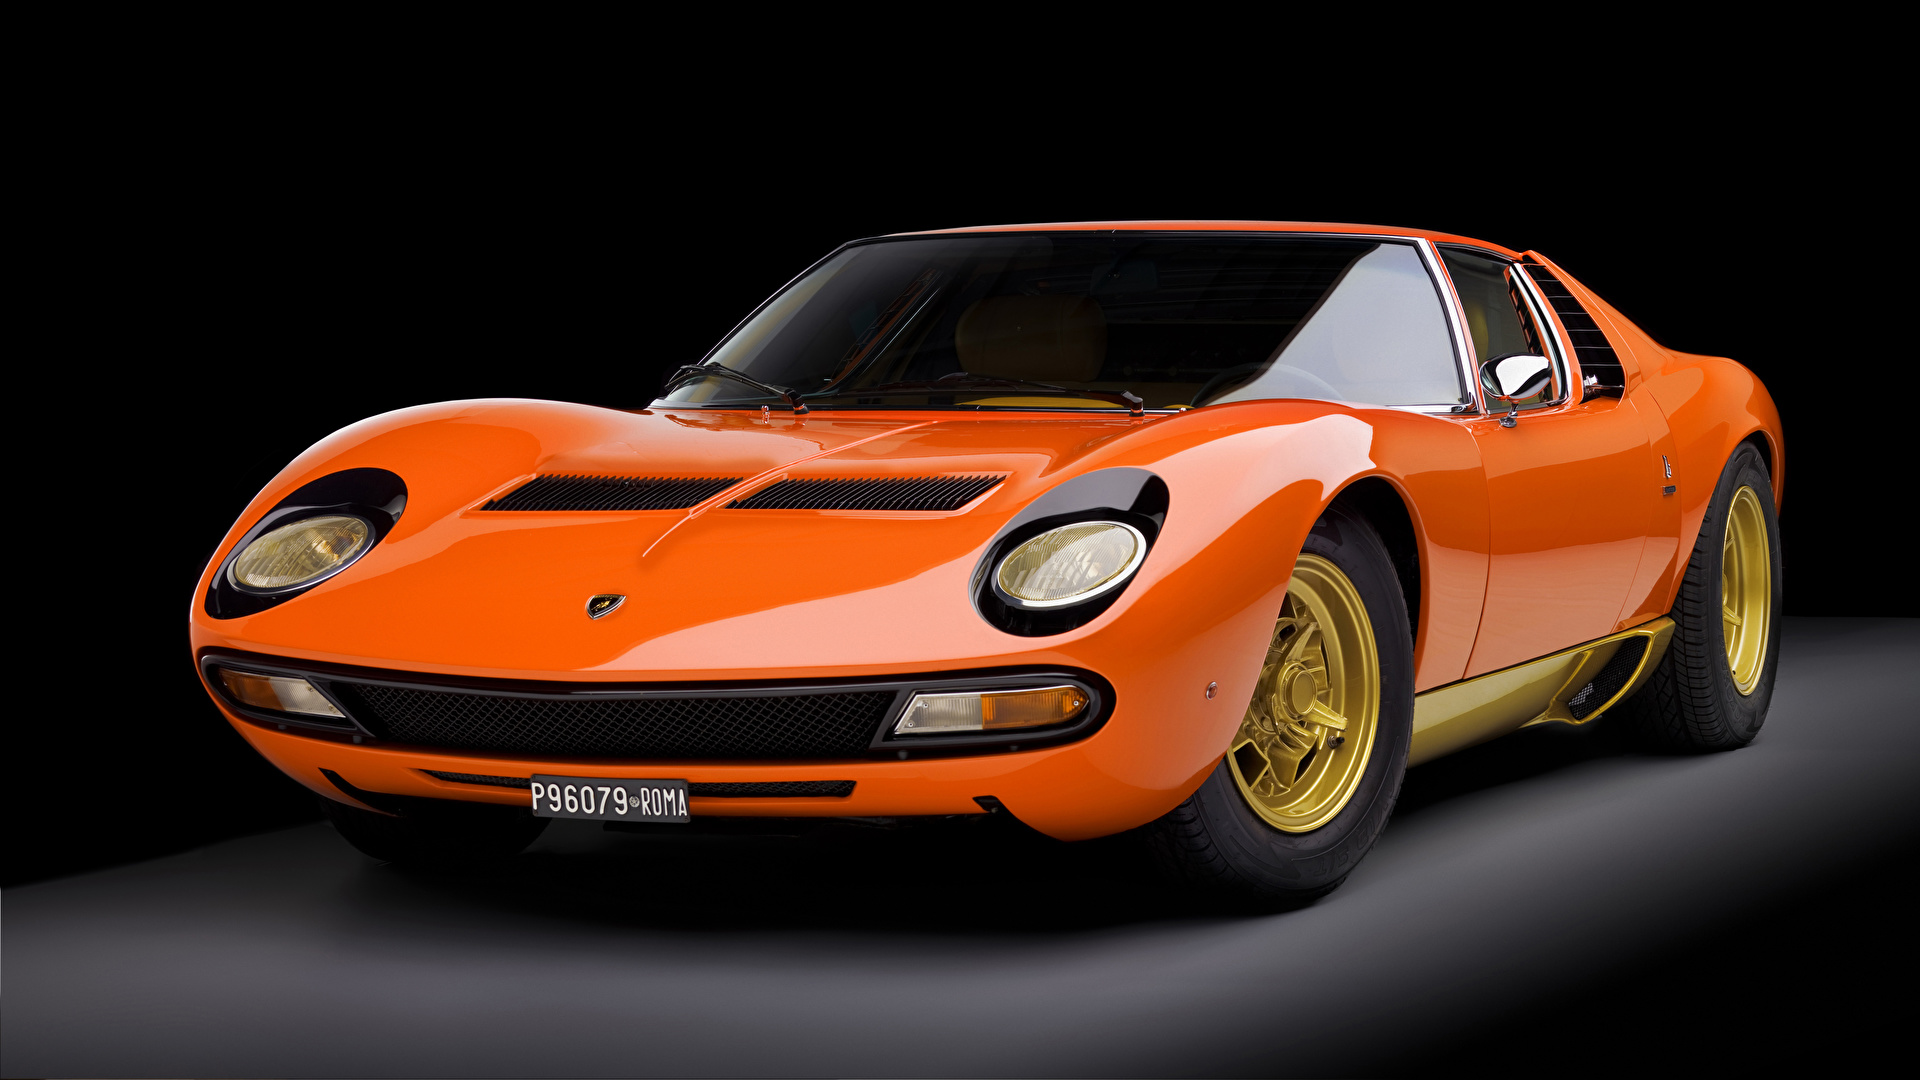 Fotos Lamborghini 1973 Miura P400 SV Worldwide Bertone antik Orange automobil Metallisch Schwarzer Hintergrund 1920x1080 Retro auto Autos